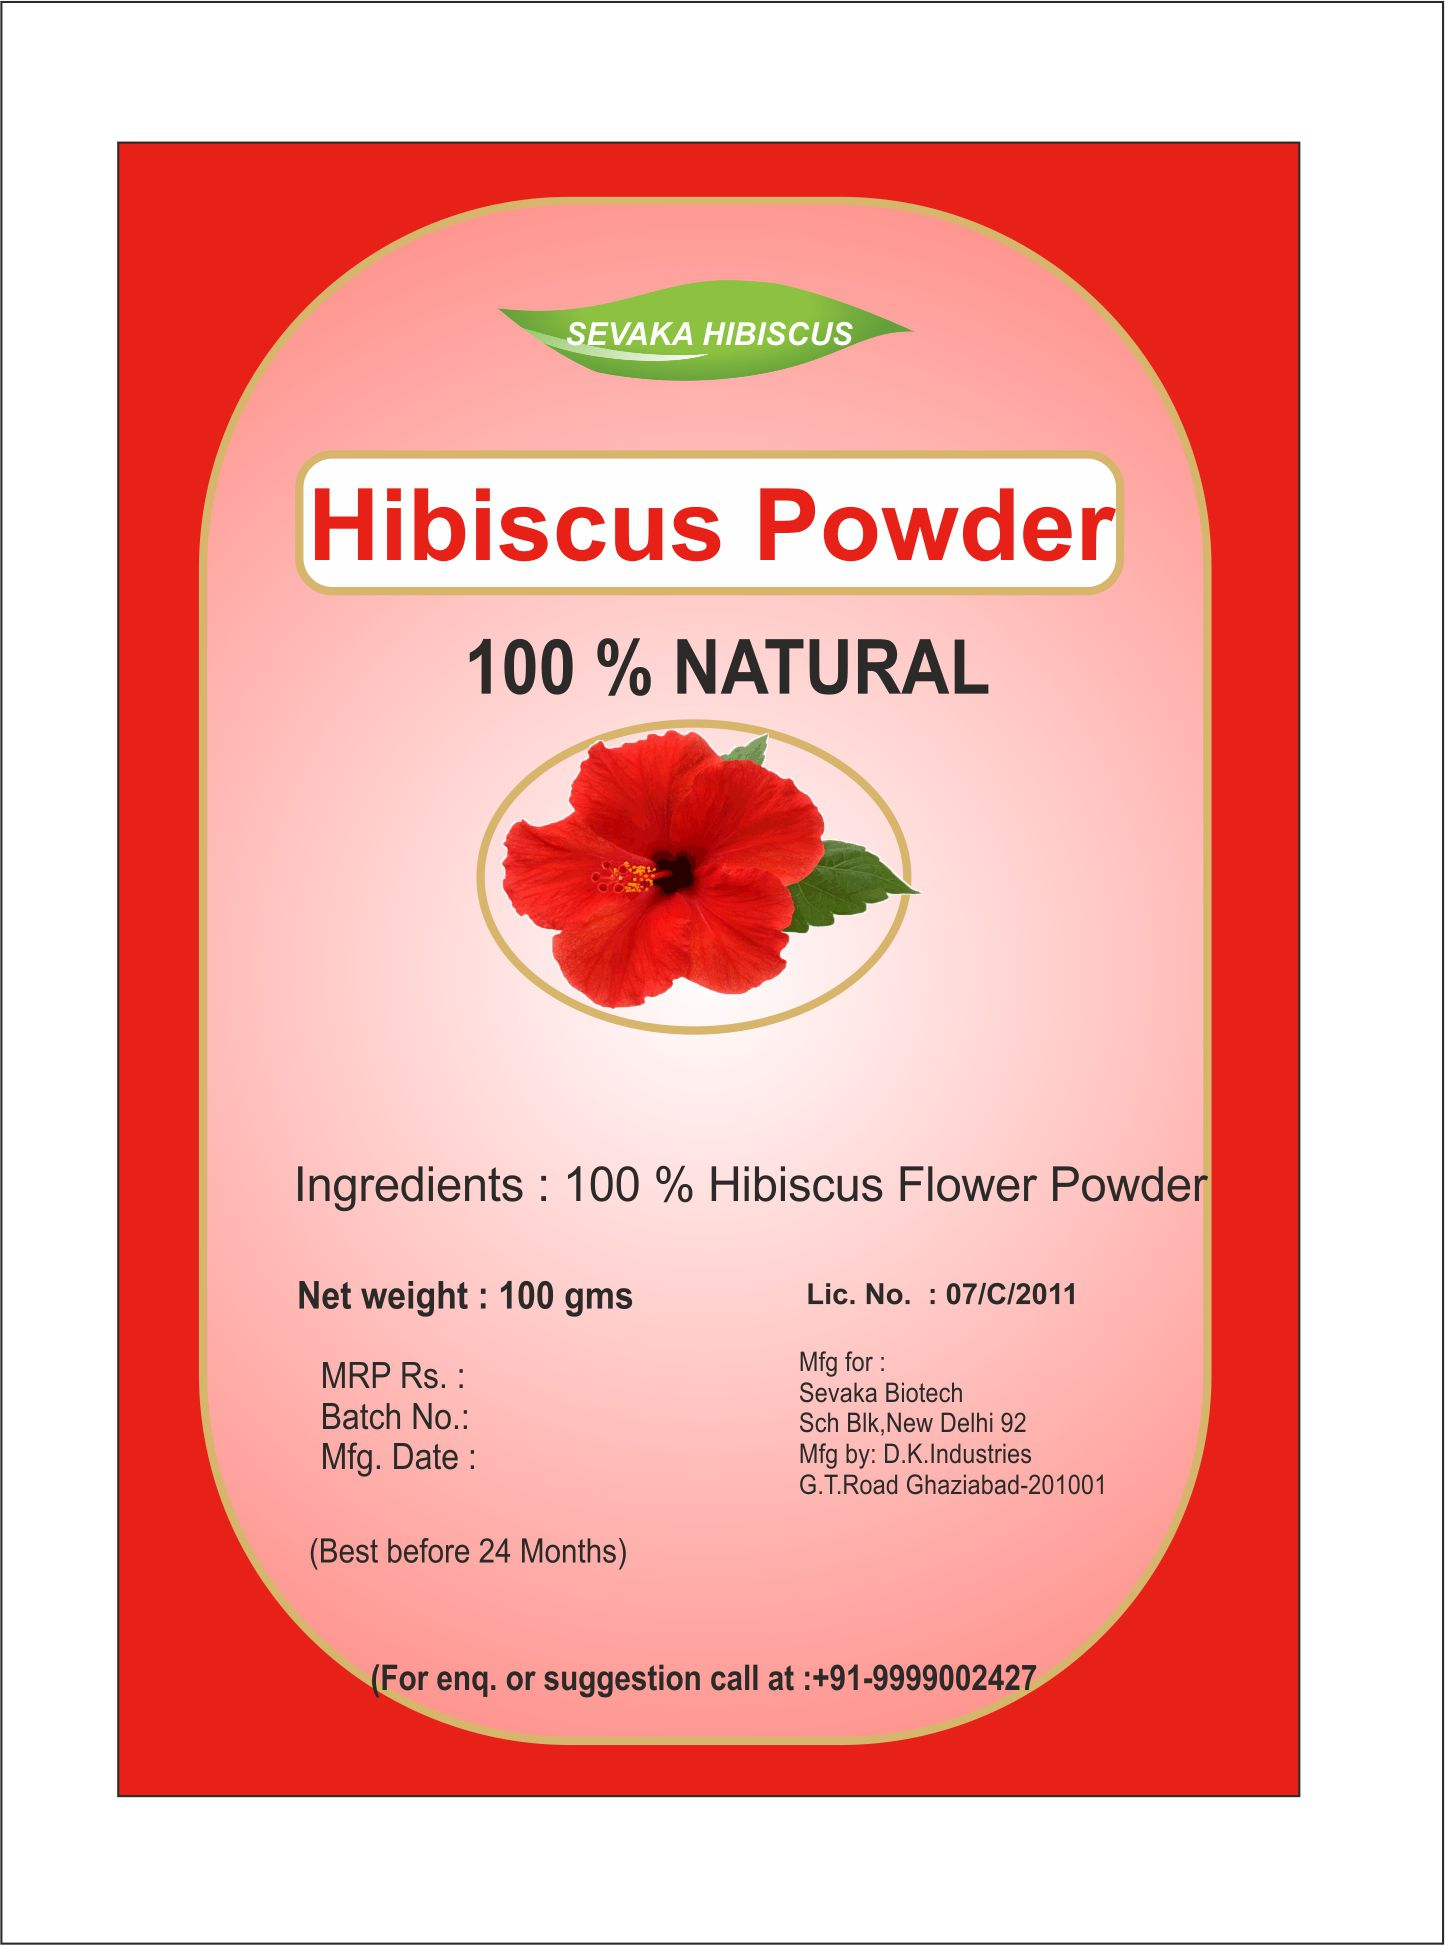 Sevaka Hibiscus Hibiscus Powder 100 Gm Semi Permanent Hair Color Red